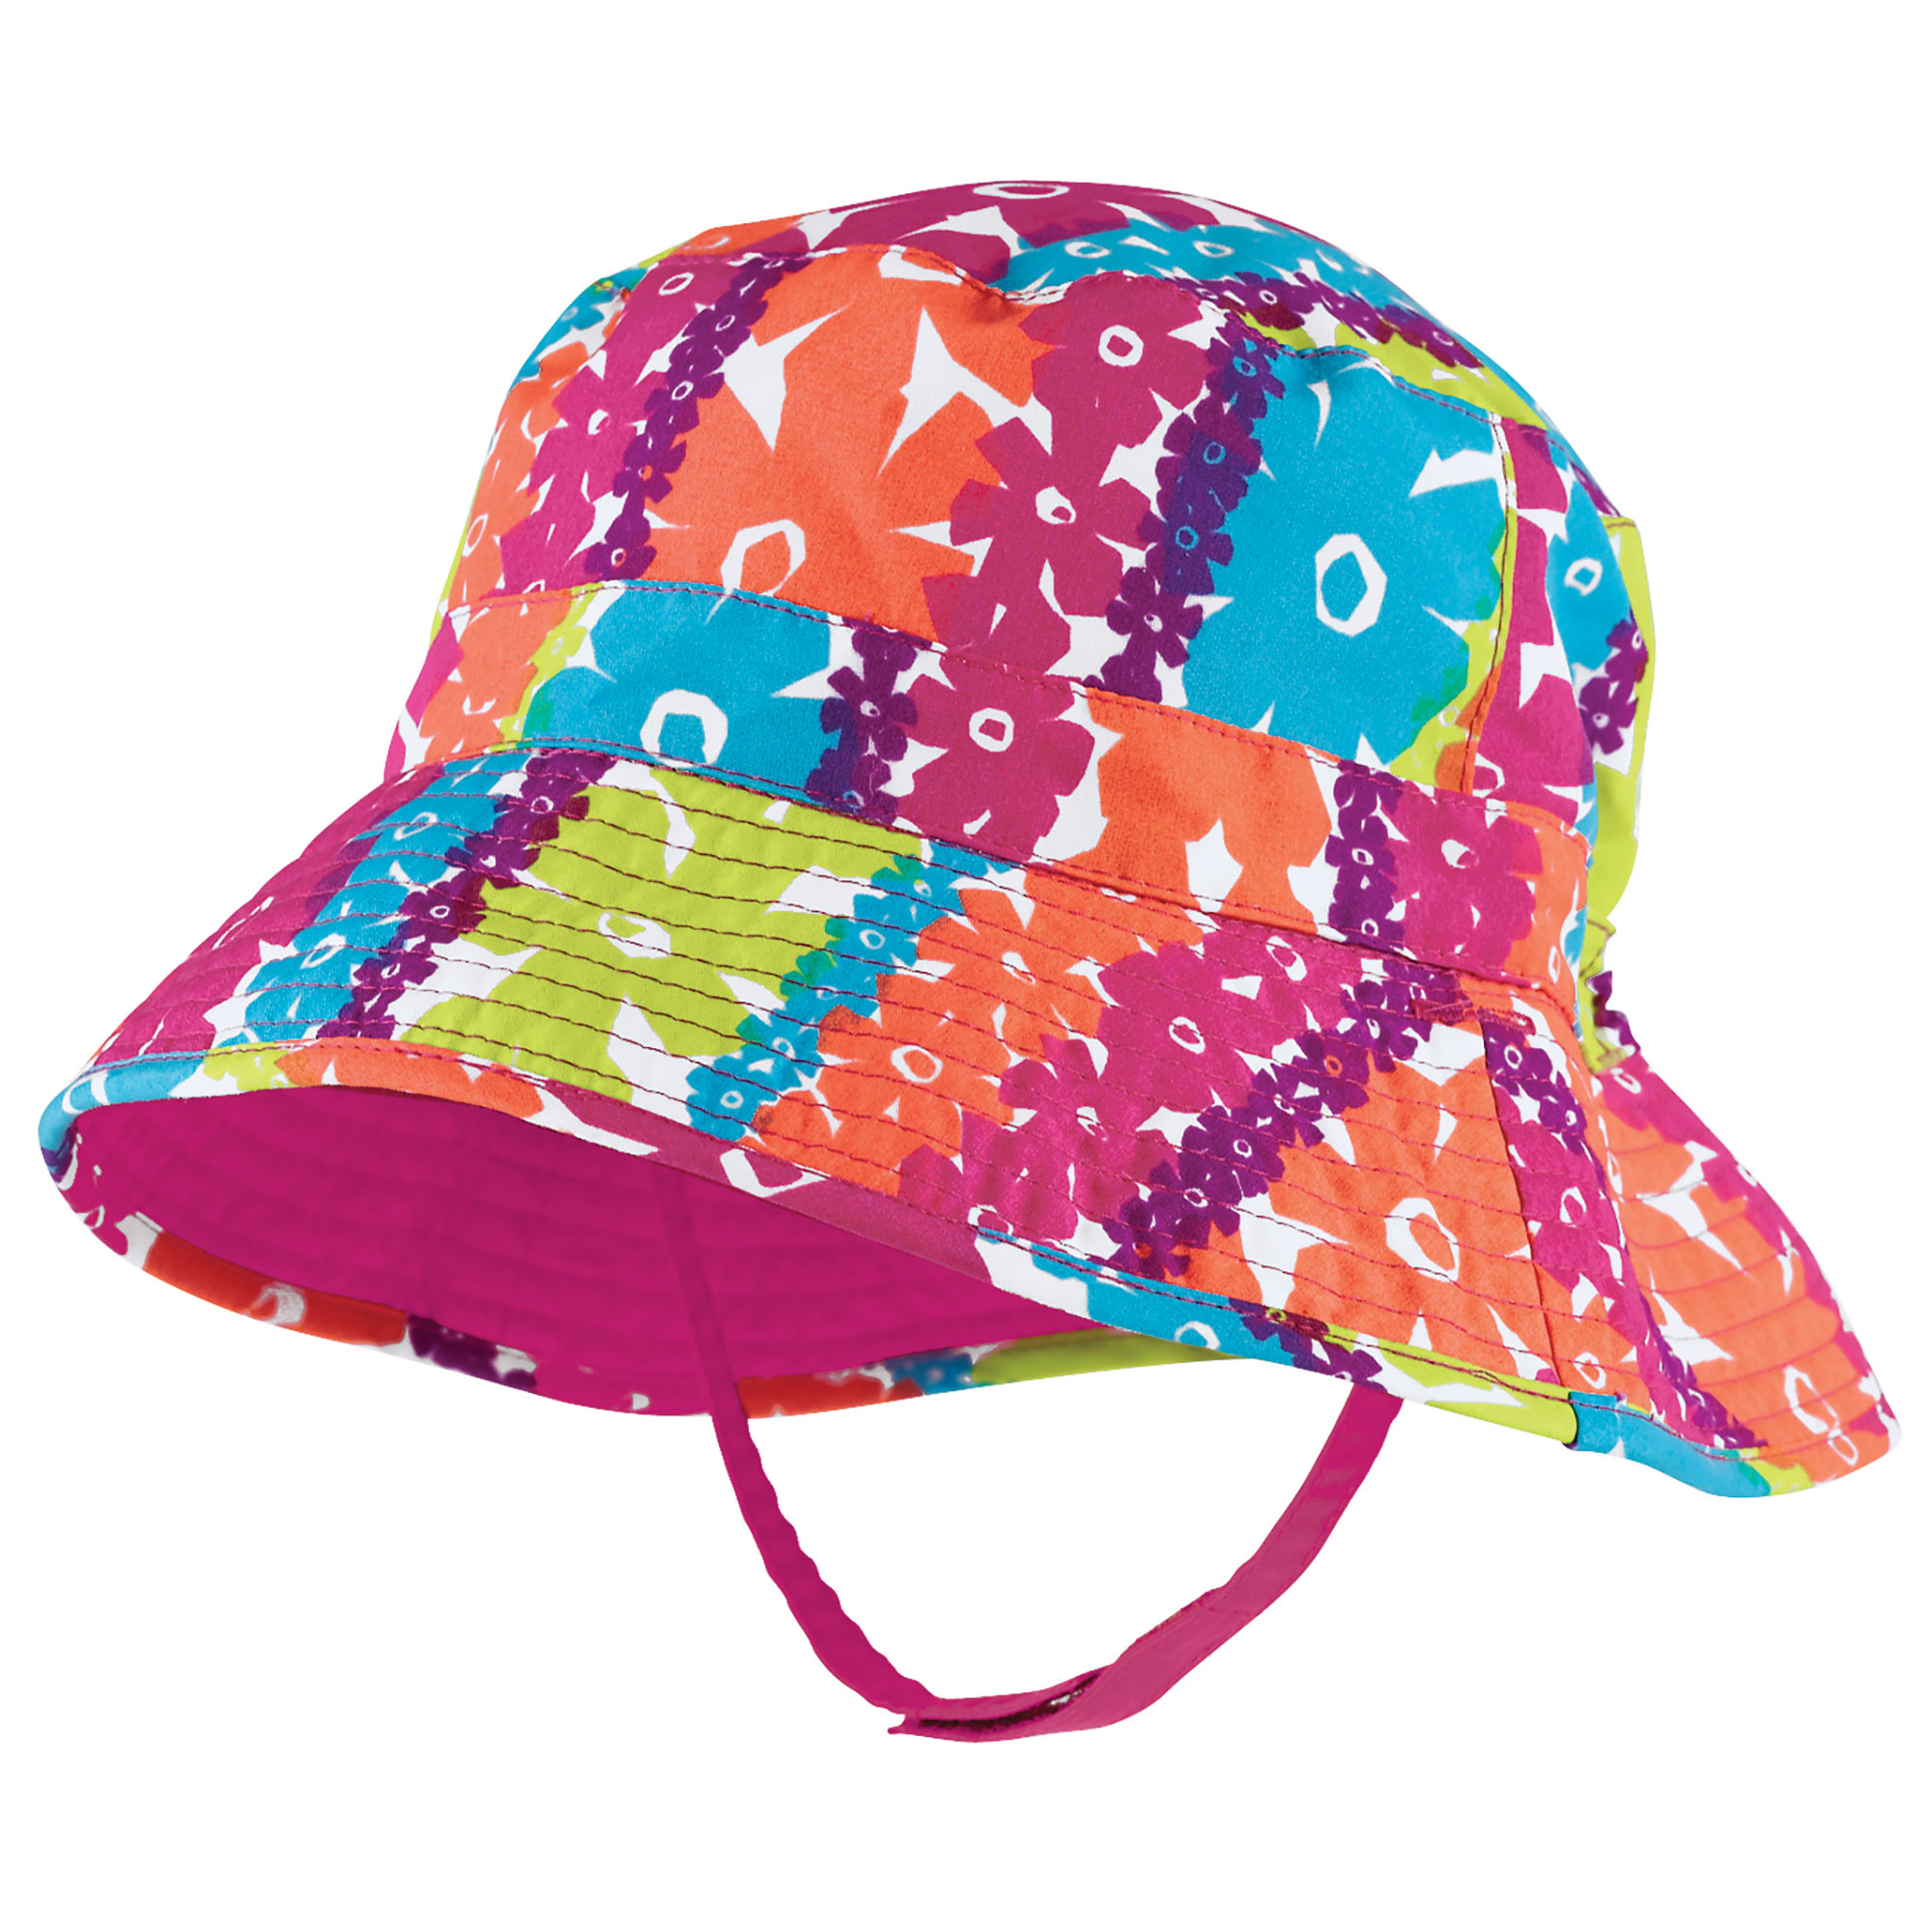 f52e4256e6 Sun Smarties - Sun Smarties Baby Girl Sun Hat - Pink Red Orange Floral  Design - UPF 50+ Sun Protection Bucket Hat - Walmart.com